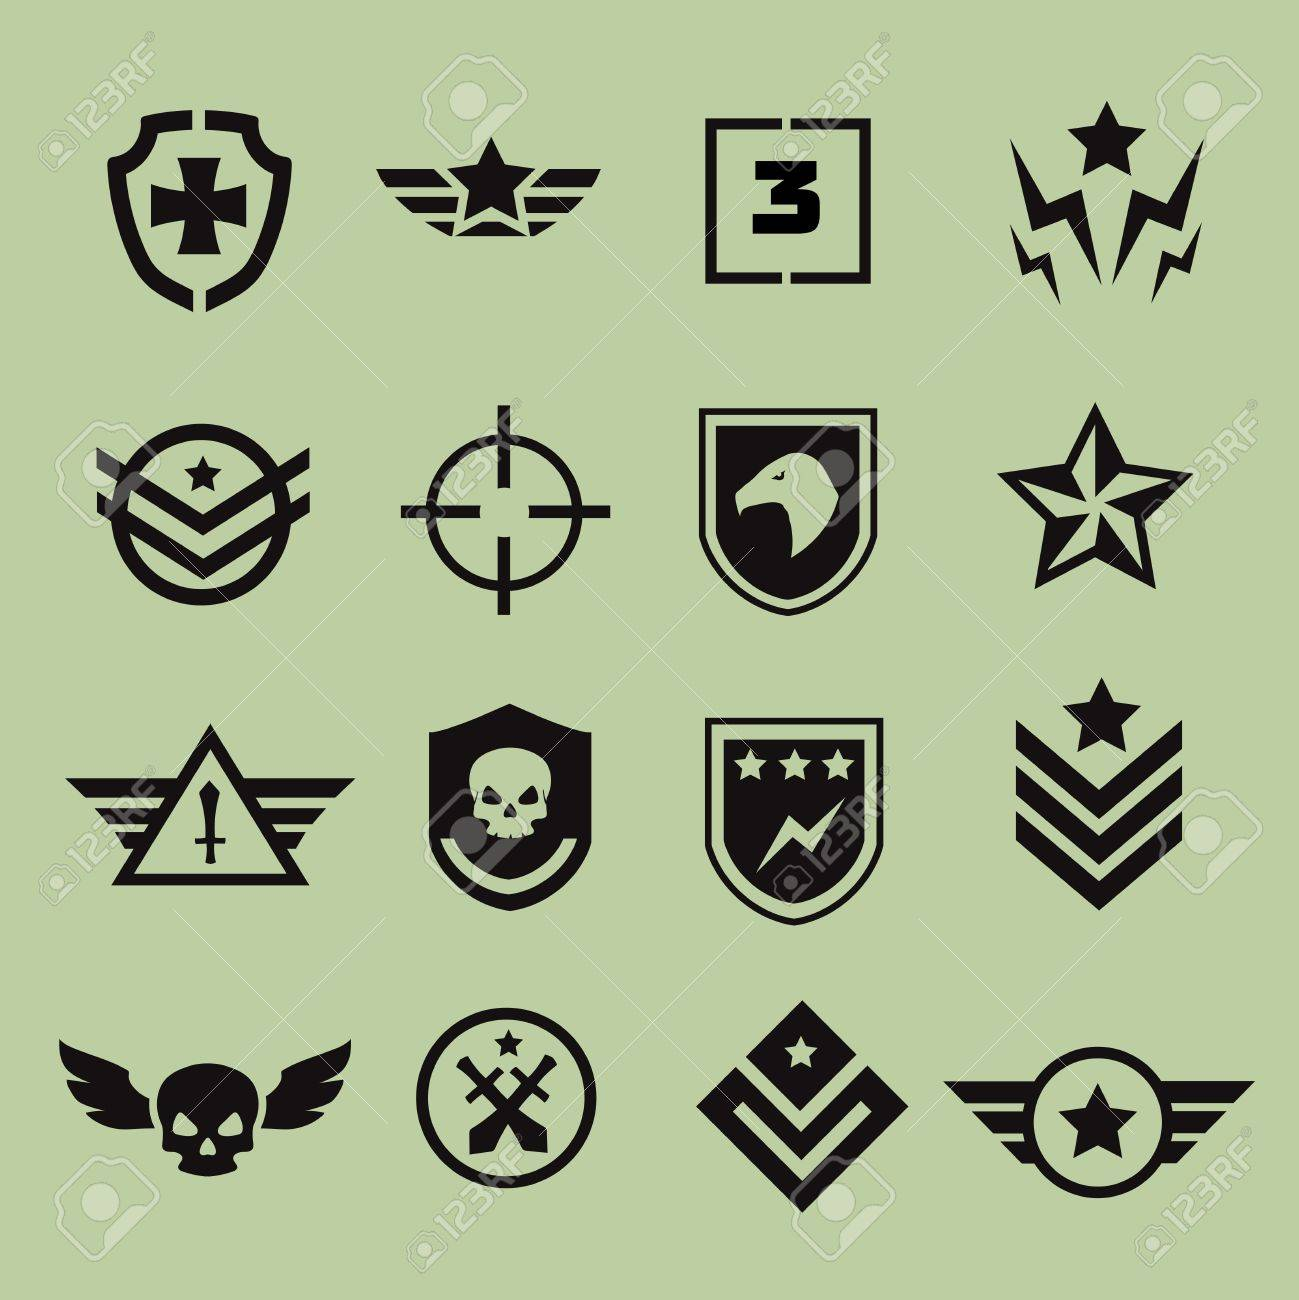 Military Symbol Icons Royalty Free Cliparts Vectors And Stock